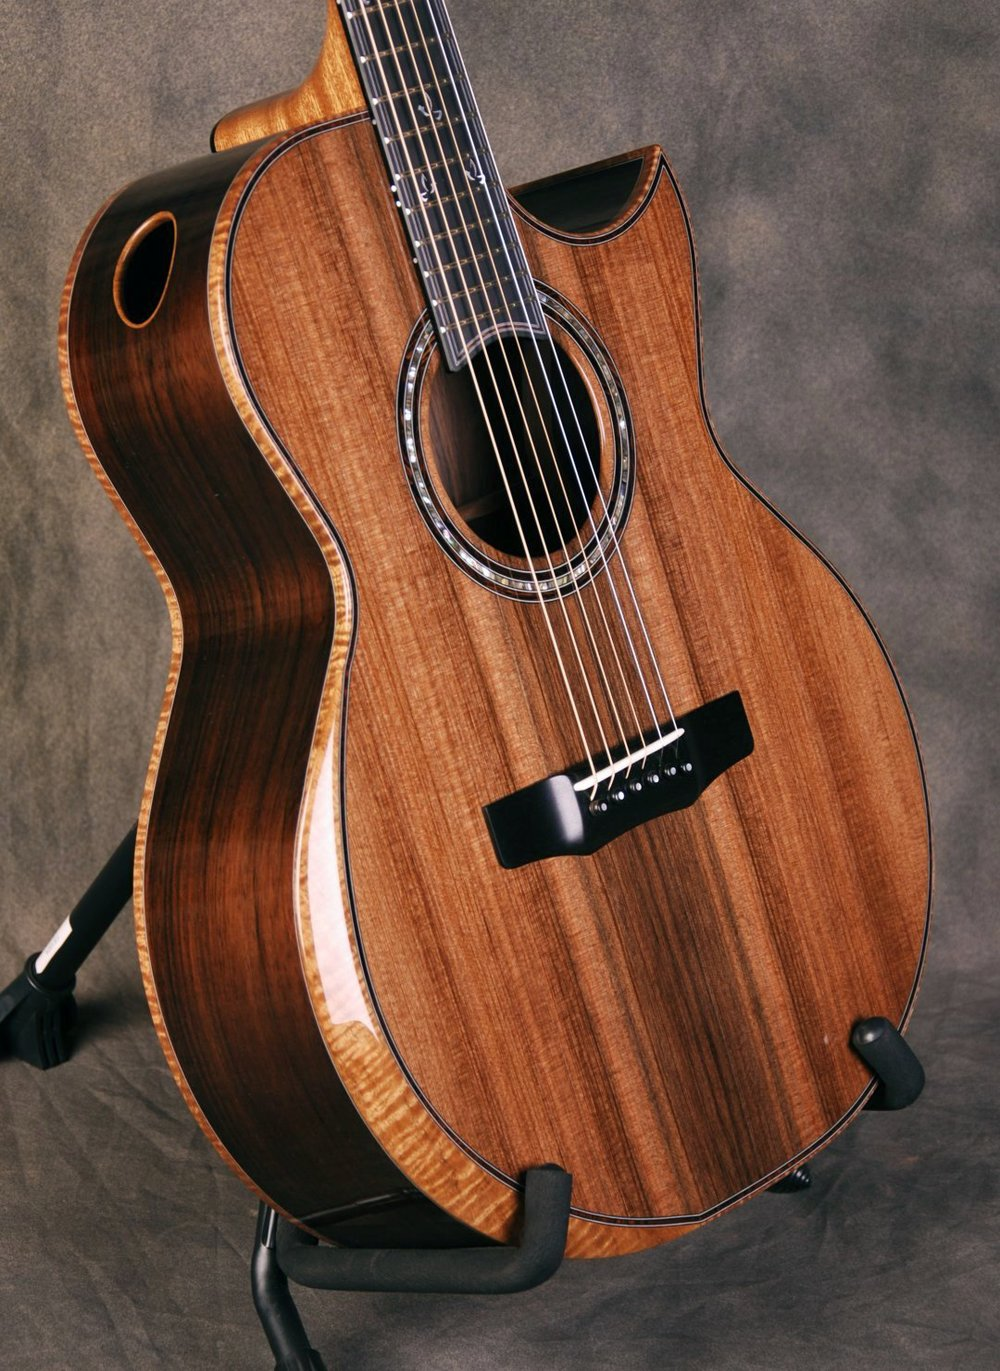 S/N 379 - Brazilian Rosewood Back/Sides, Sinker Redwood Top